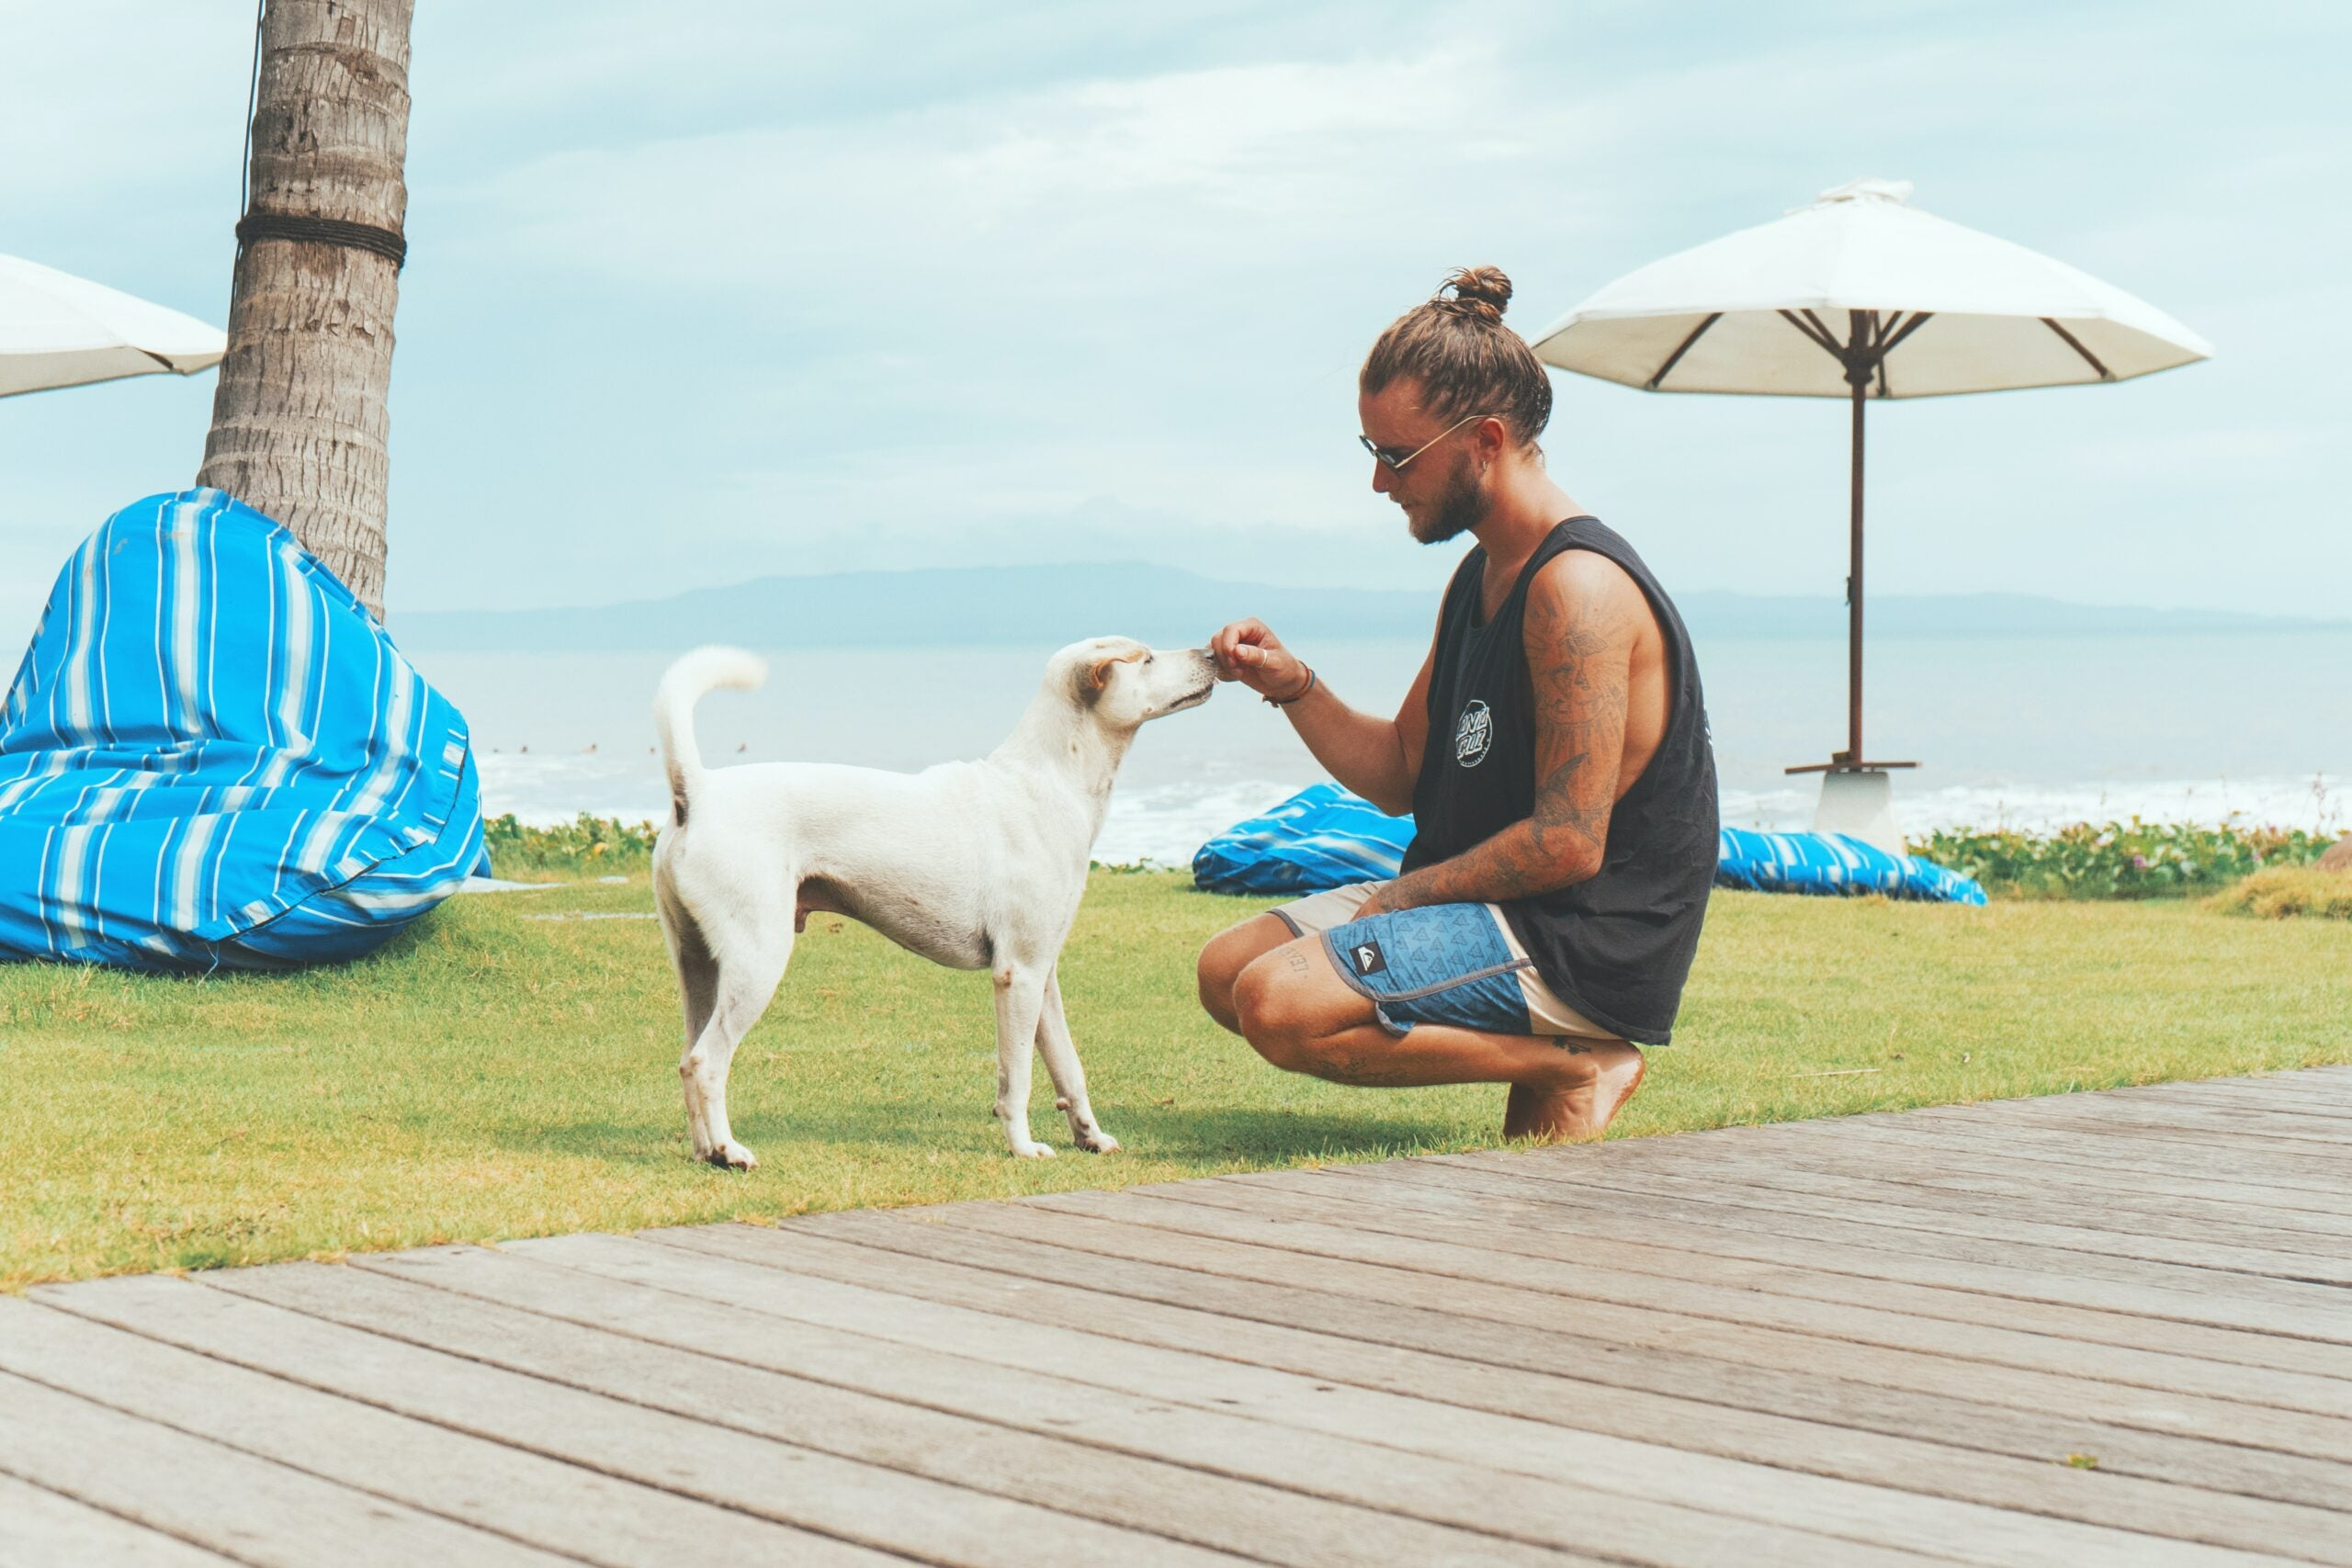 man on a boardwalk giving his dog a treat